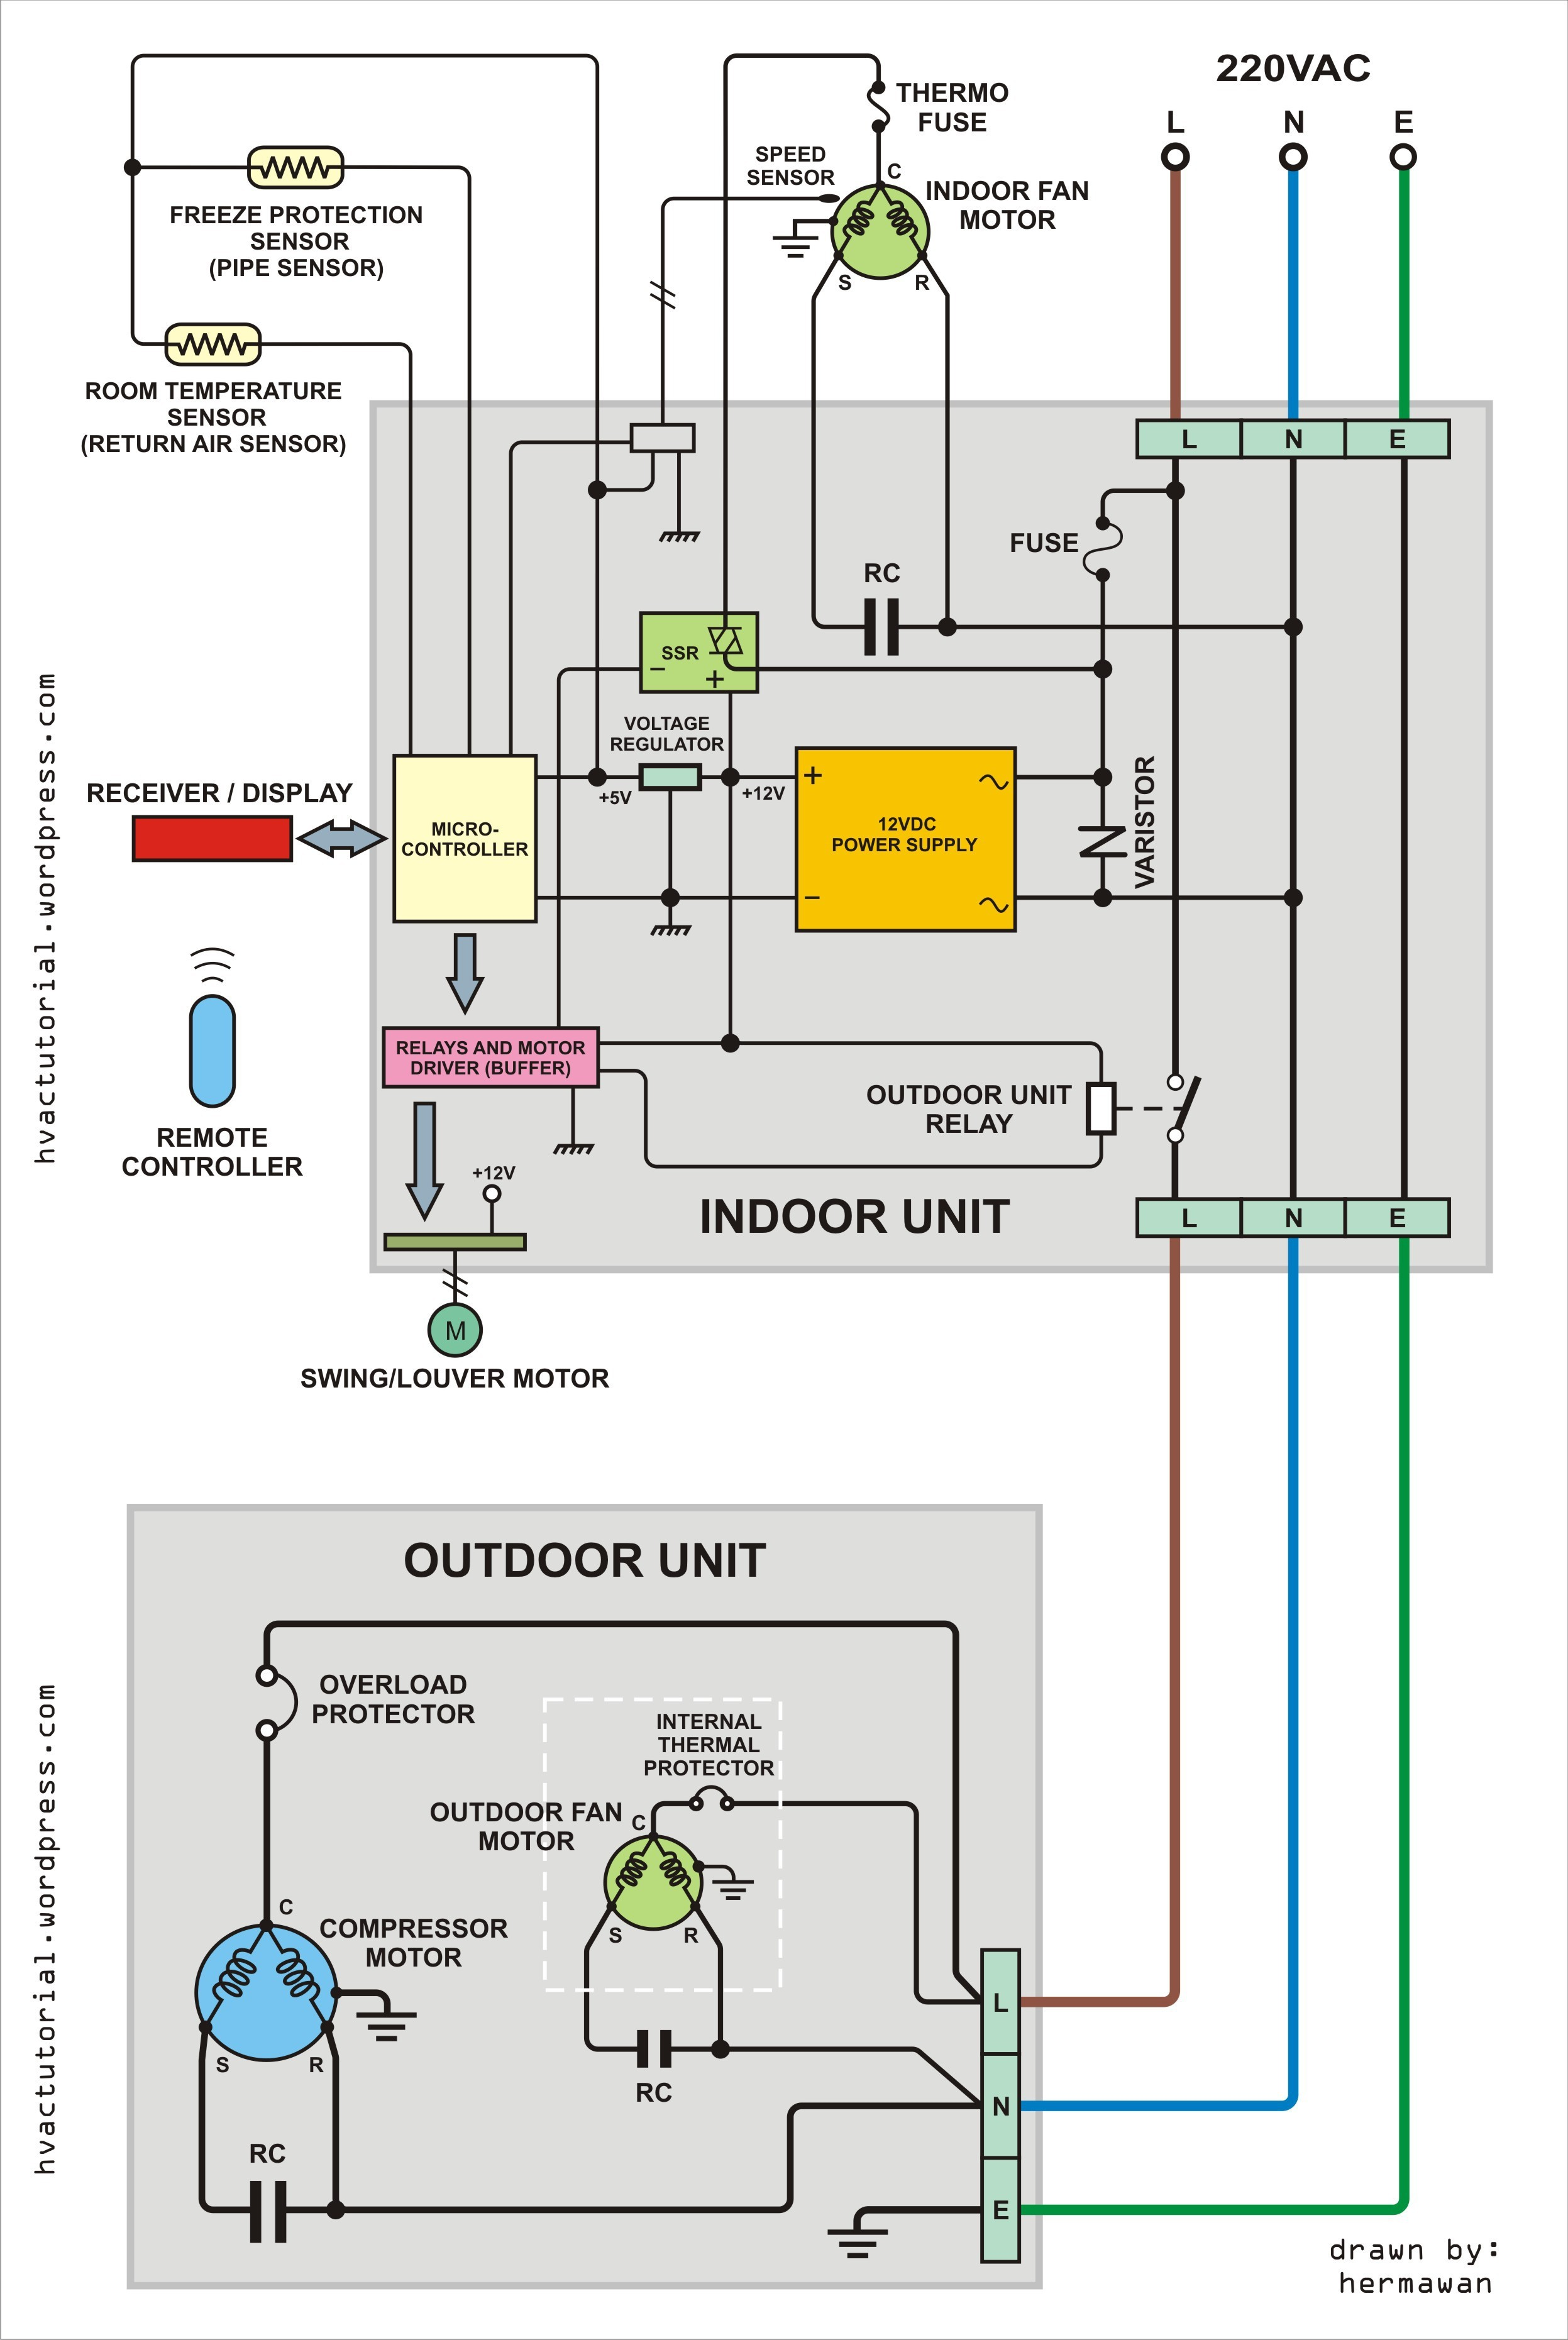 ac wiring diagram beautiful split air conditioner of jayco diagrams rh acousticguitarguide org Jayco Trailer Wiring 1994 Jayco Wiring Diagram